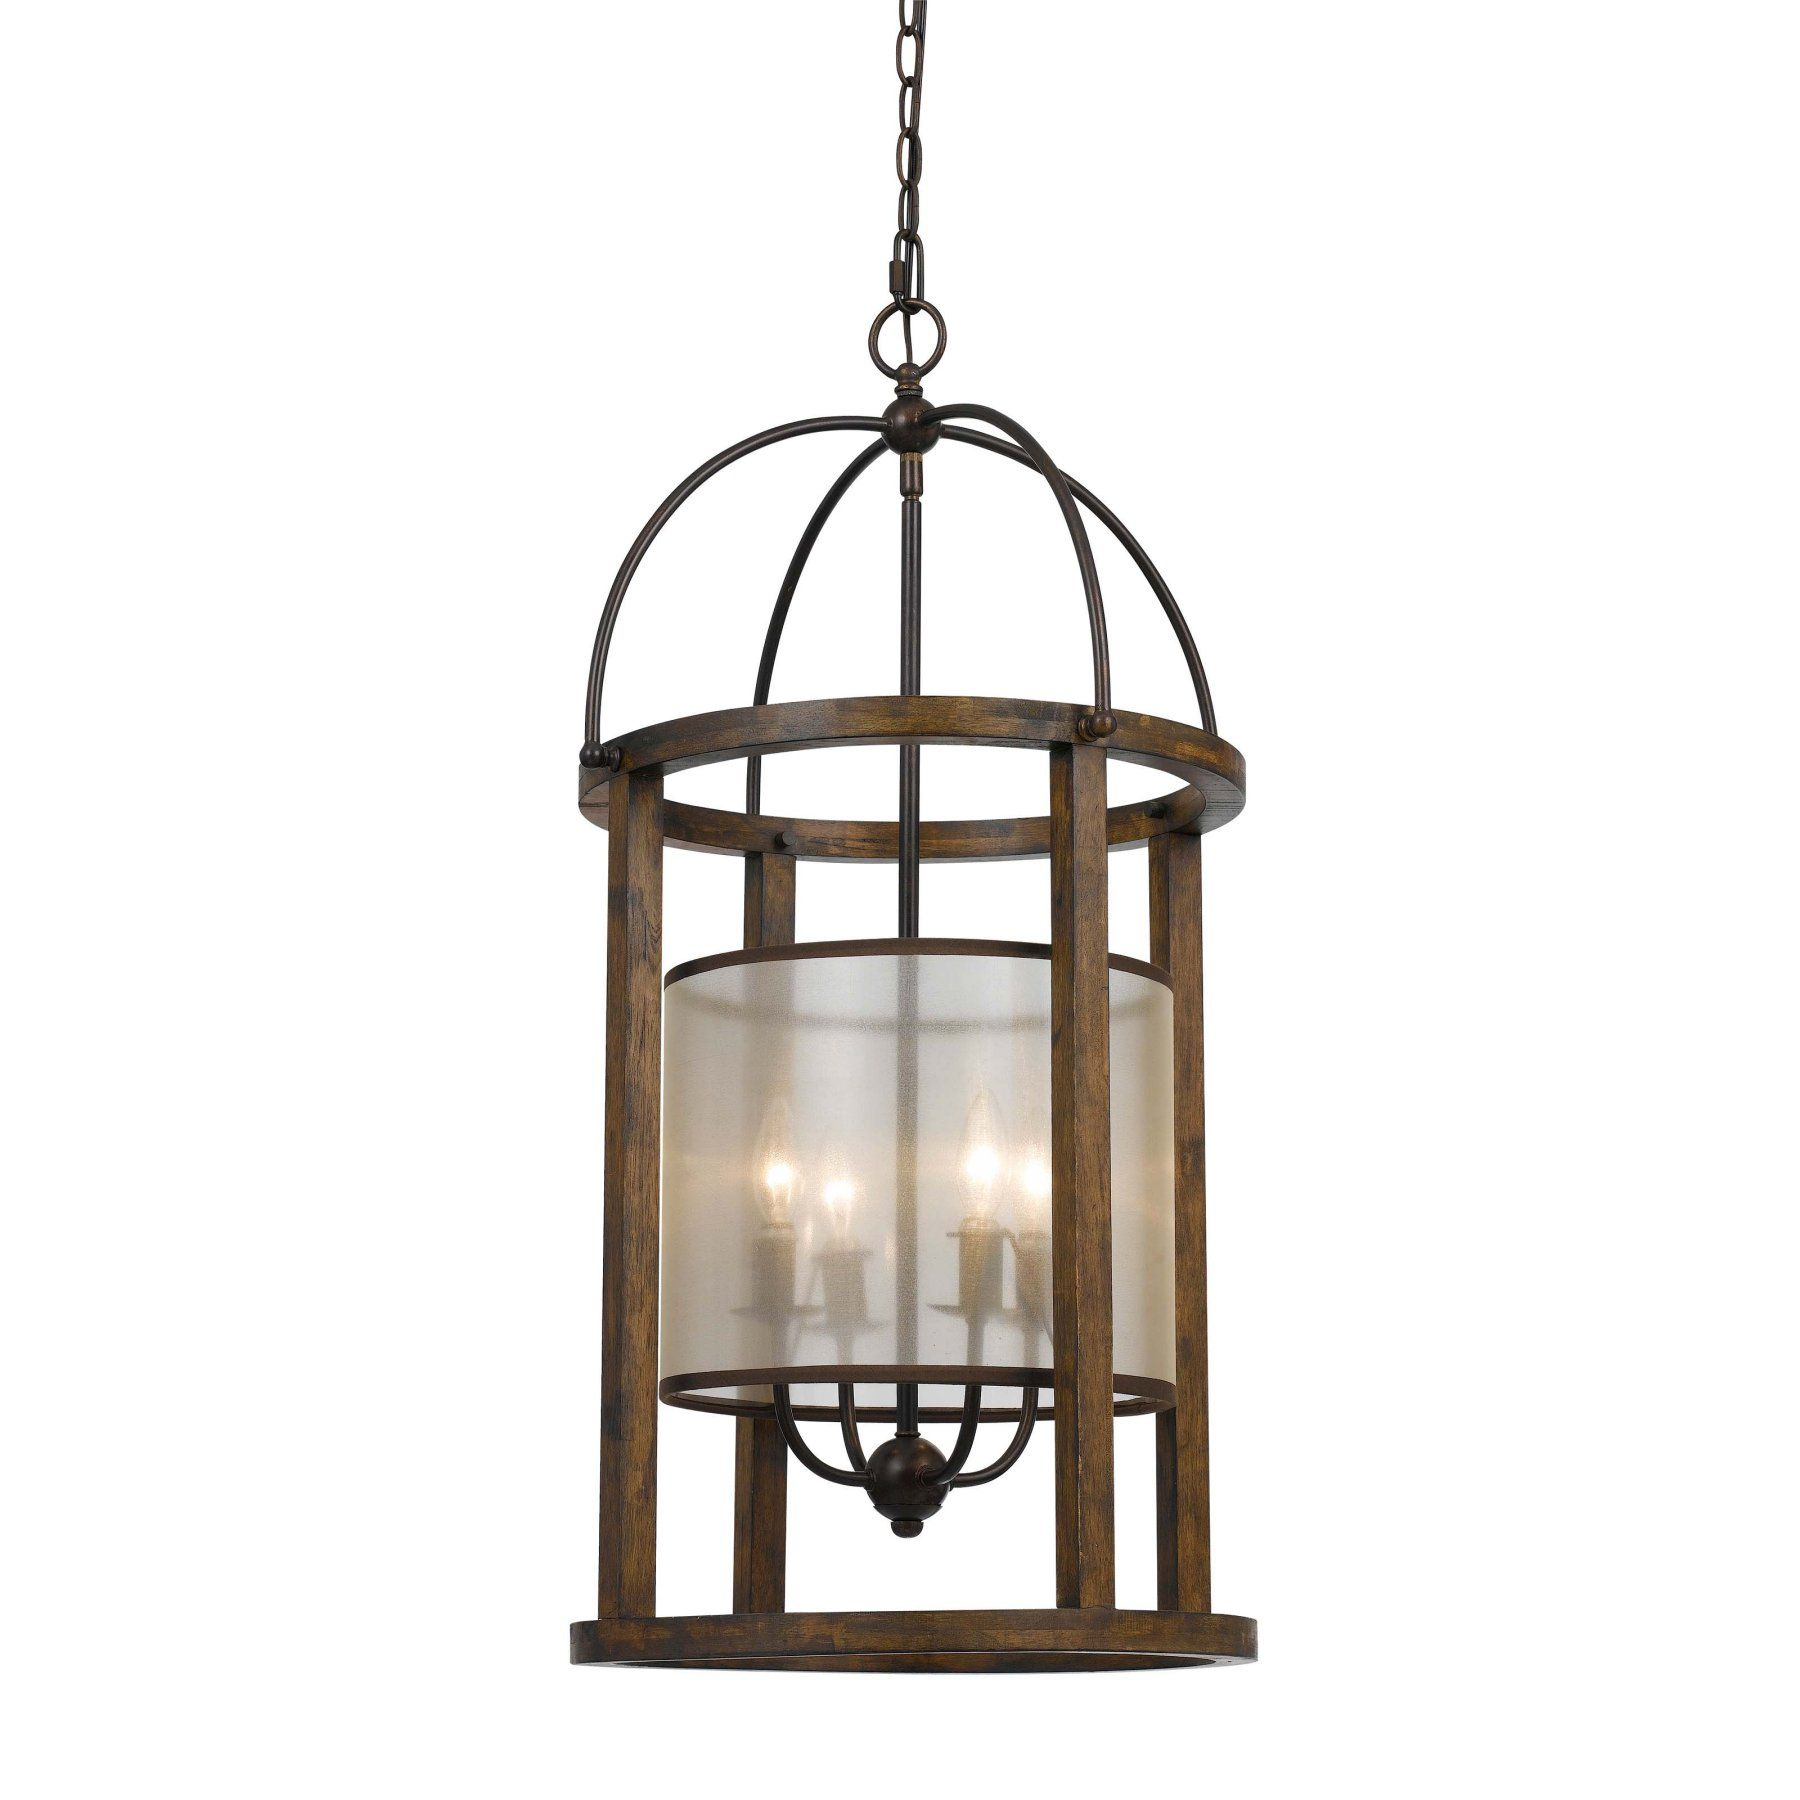 Cal Lighting Lantern Fx 35364L Chandelier  Fx 35364L